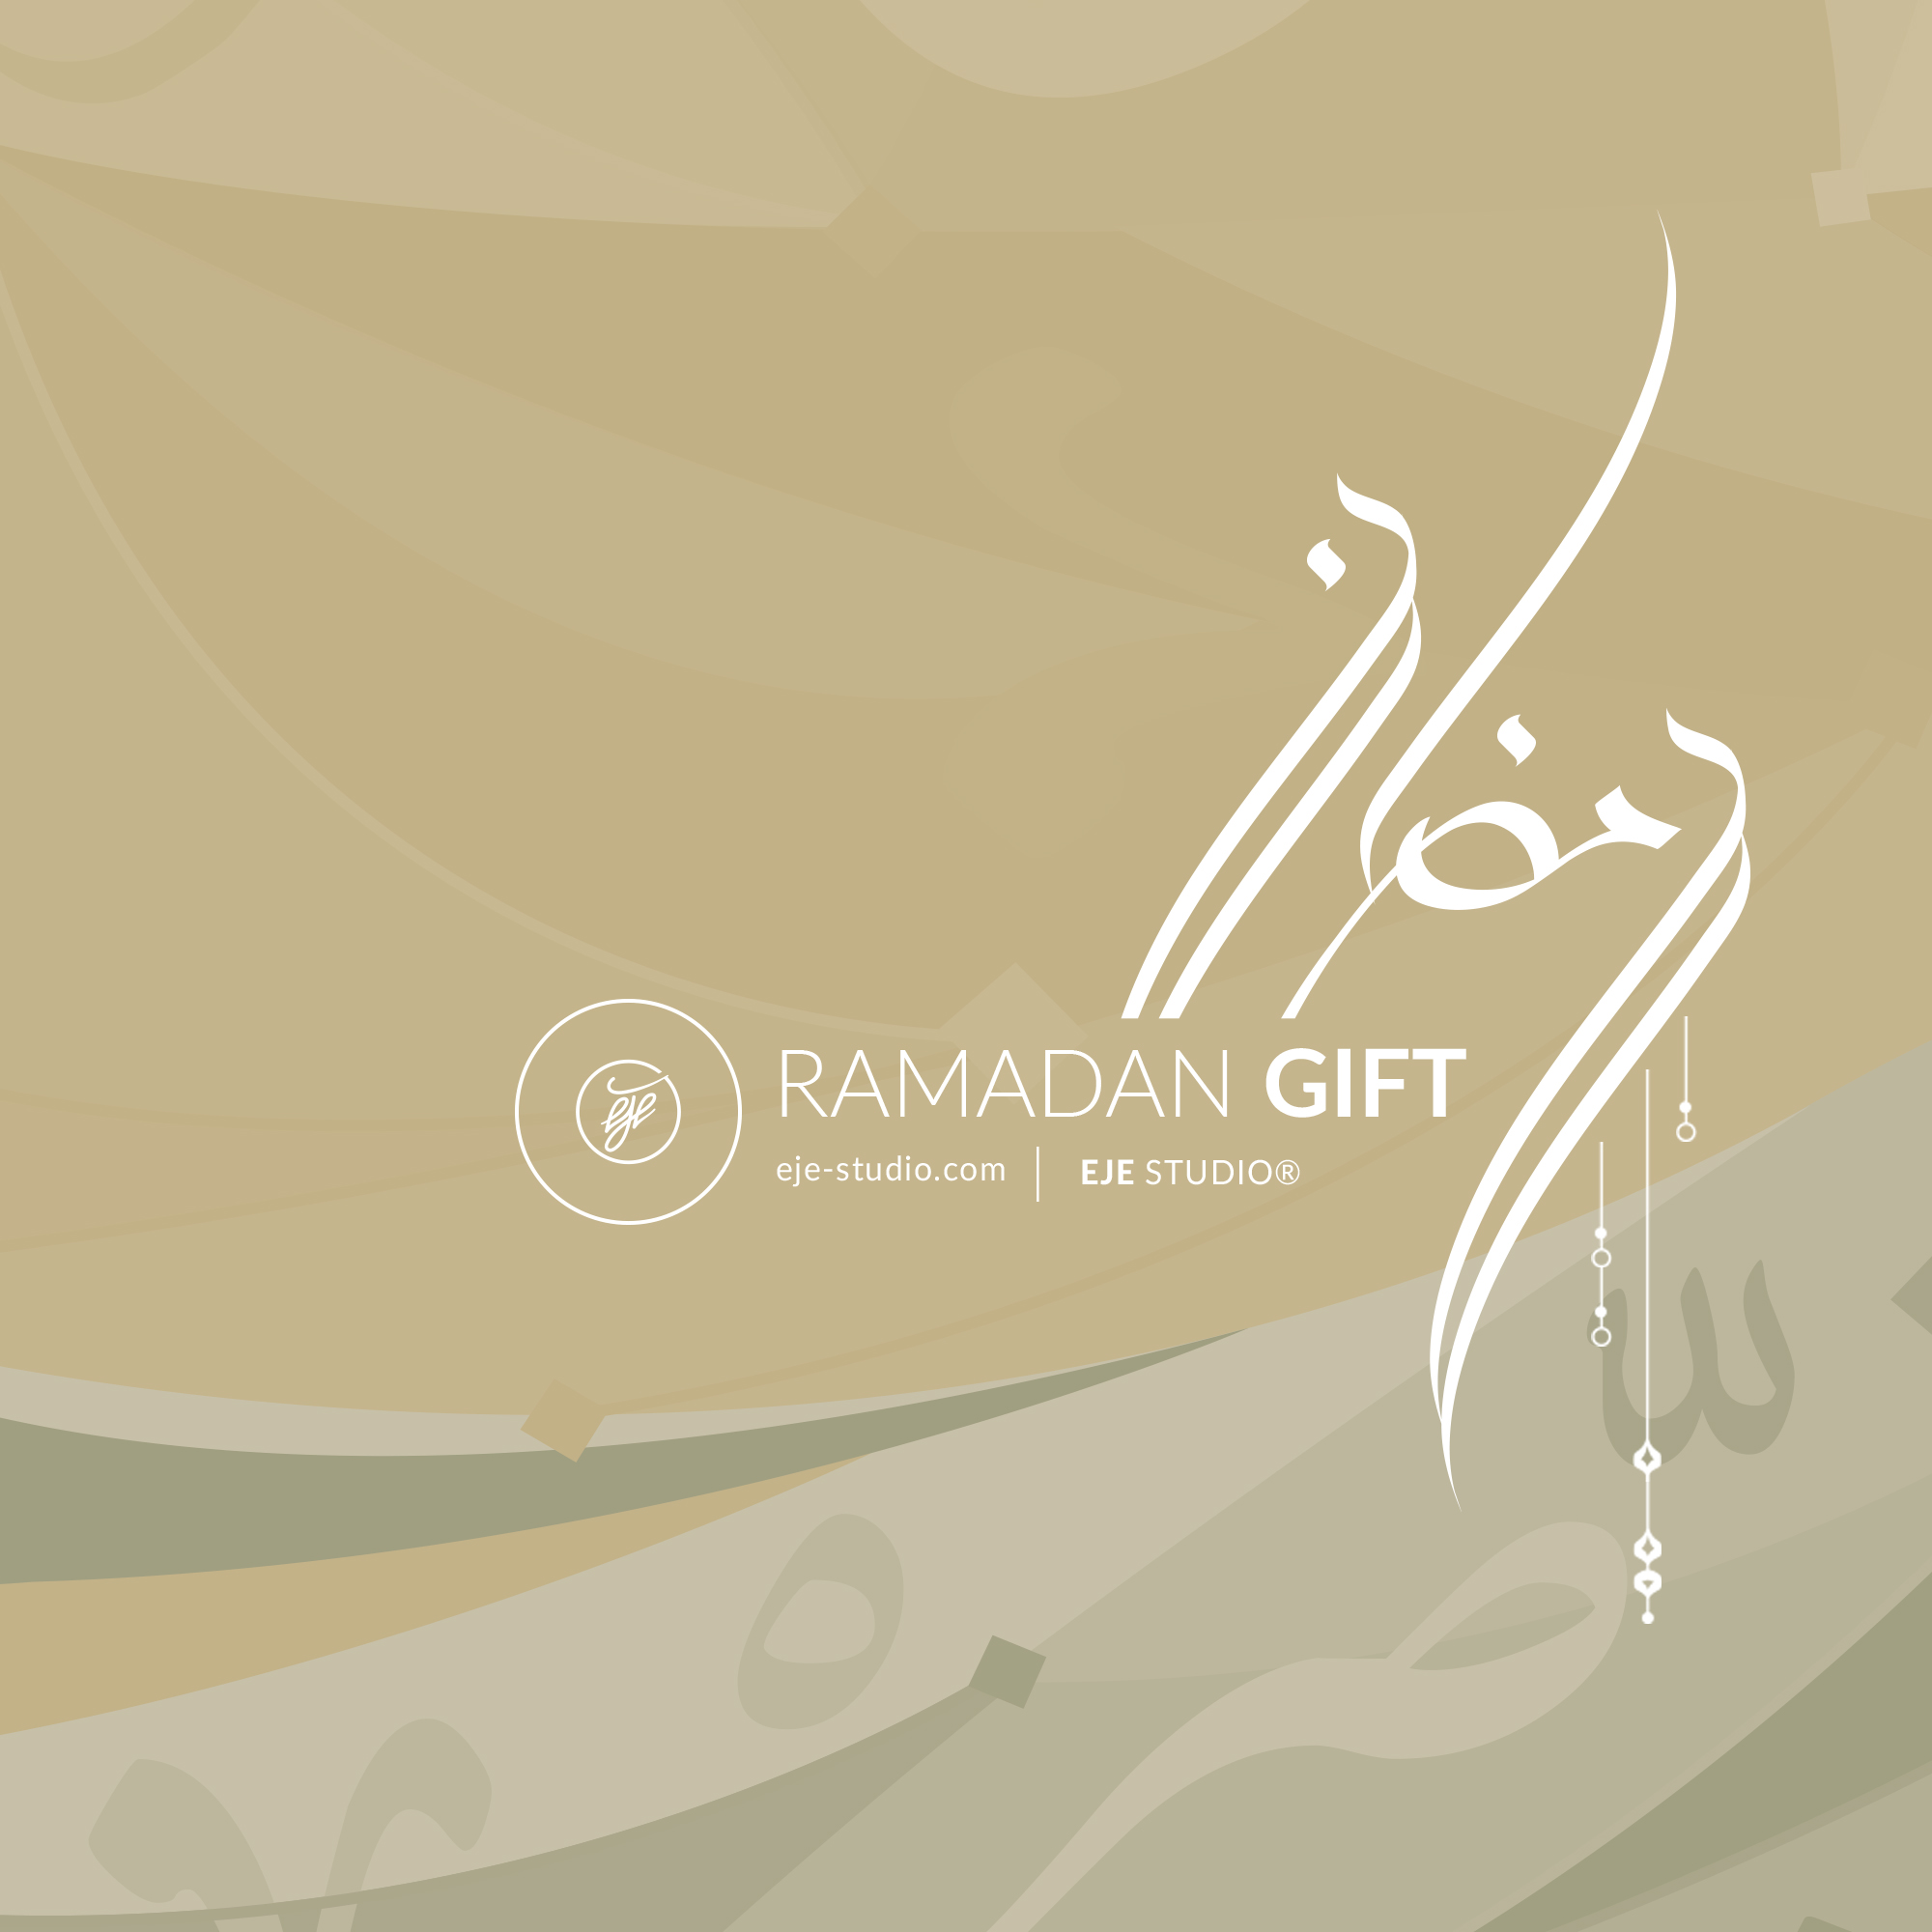 Free ramadan arabic calligraphy by eje studio one bh on